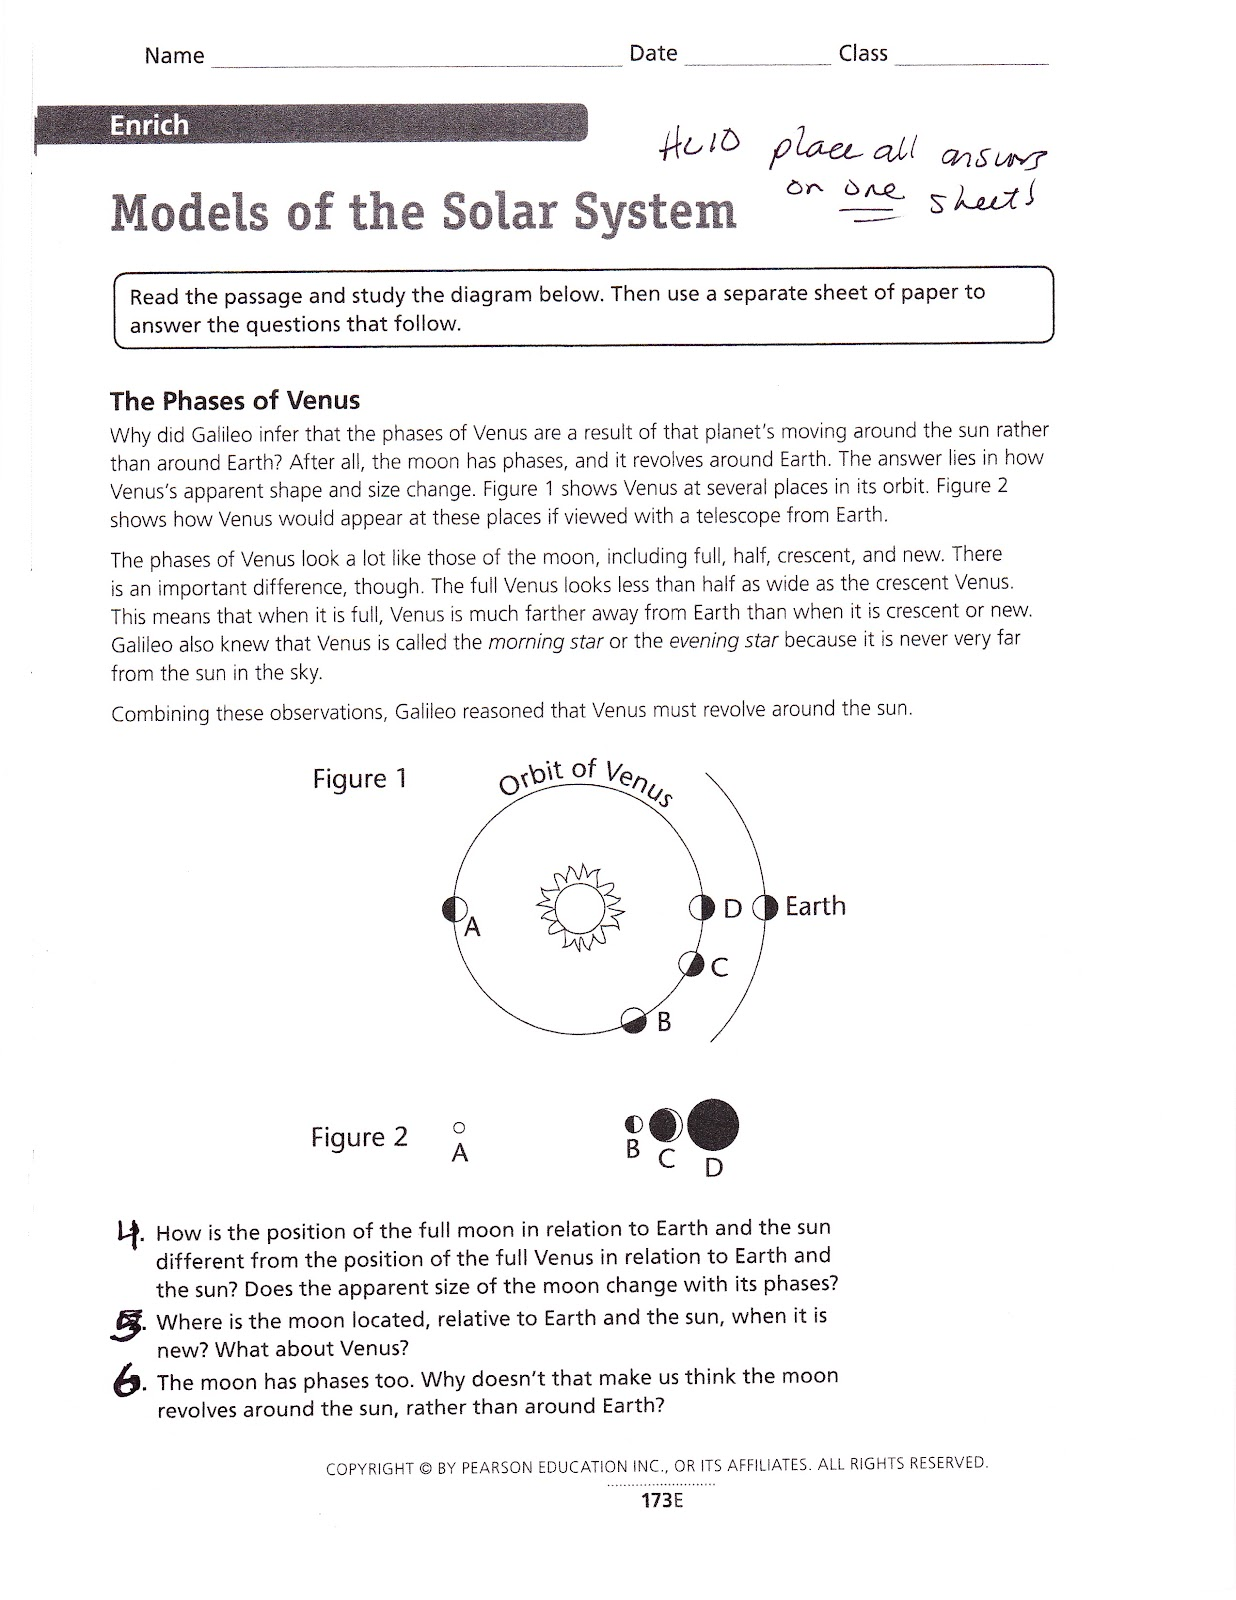 essay on heliocentrism